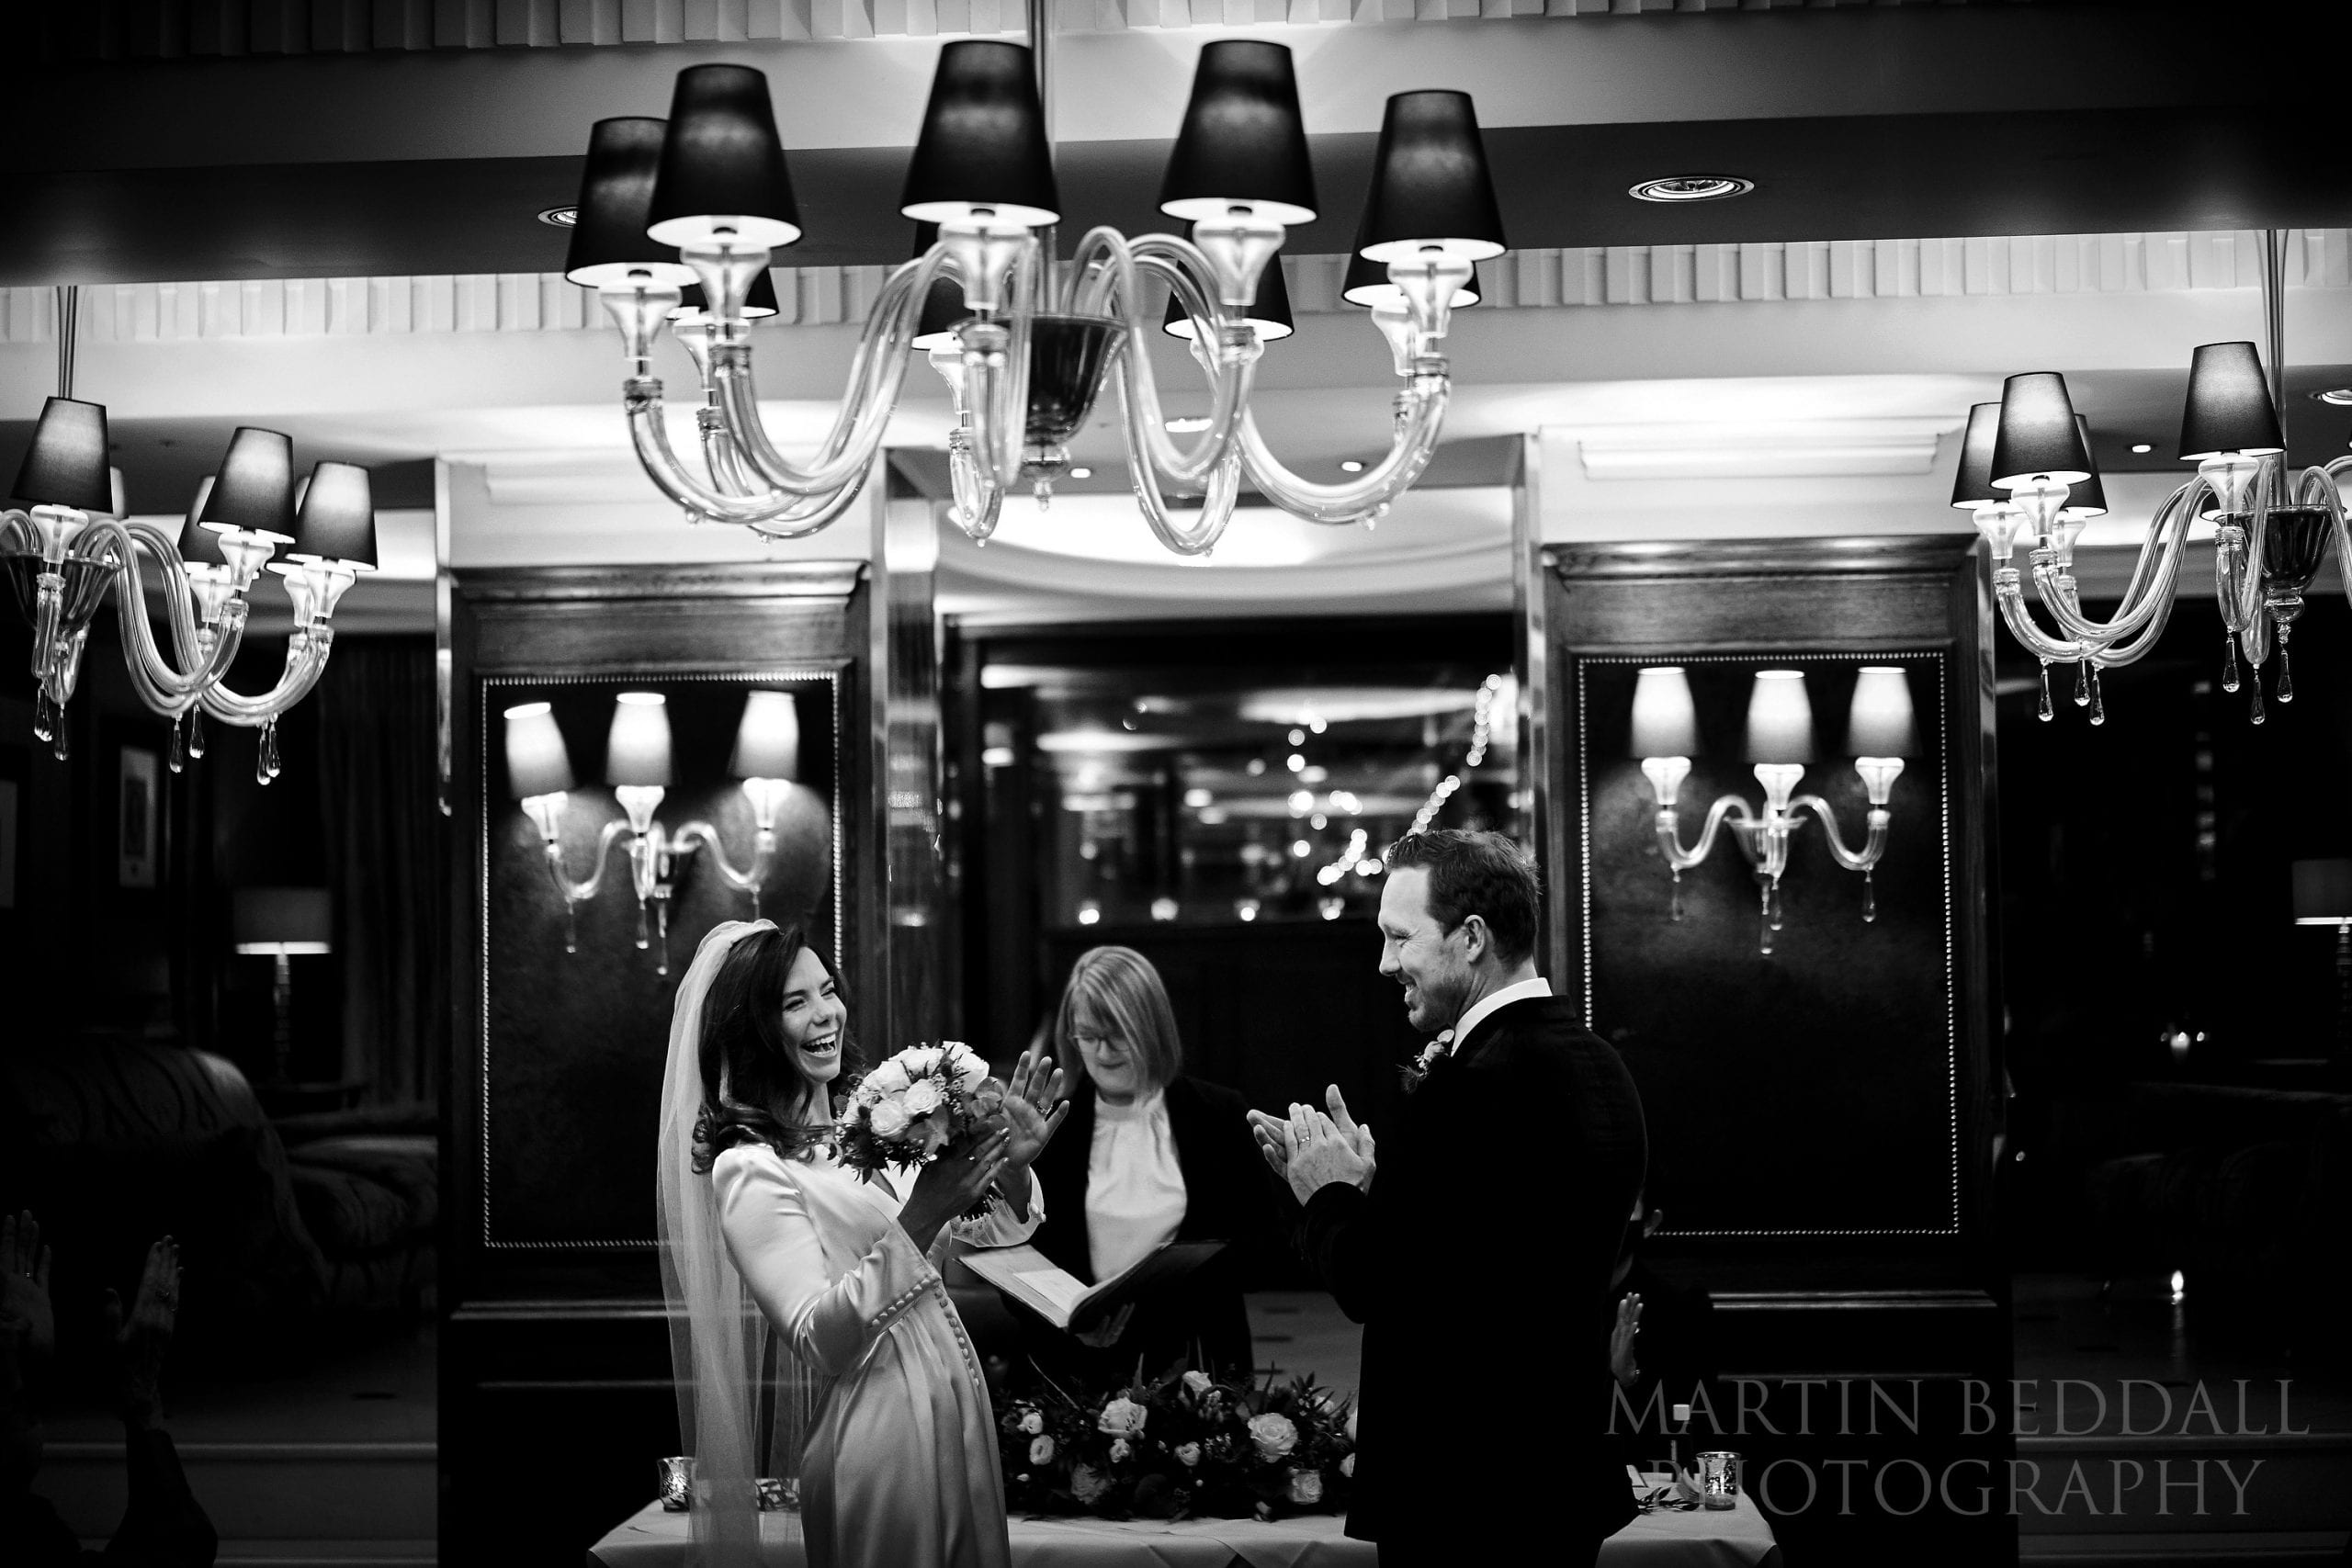 Wedding ceremony at The Goring hotel in London